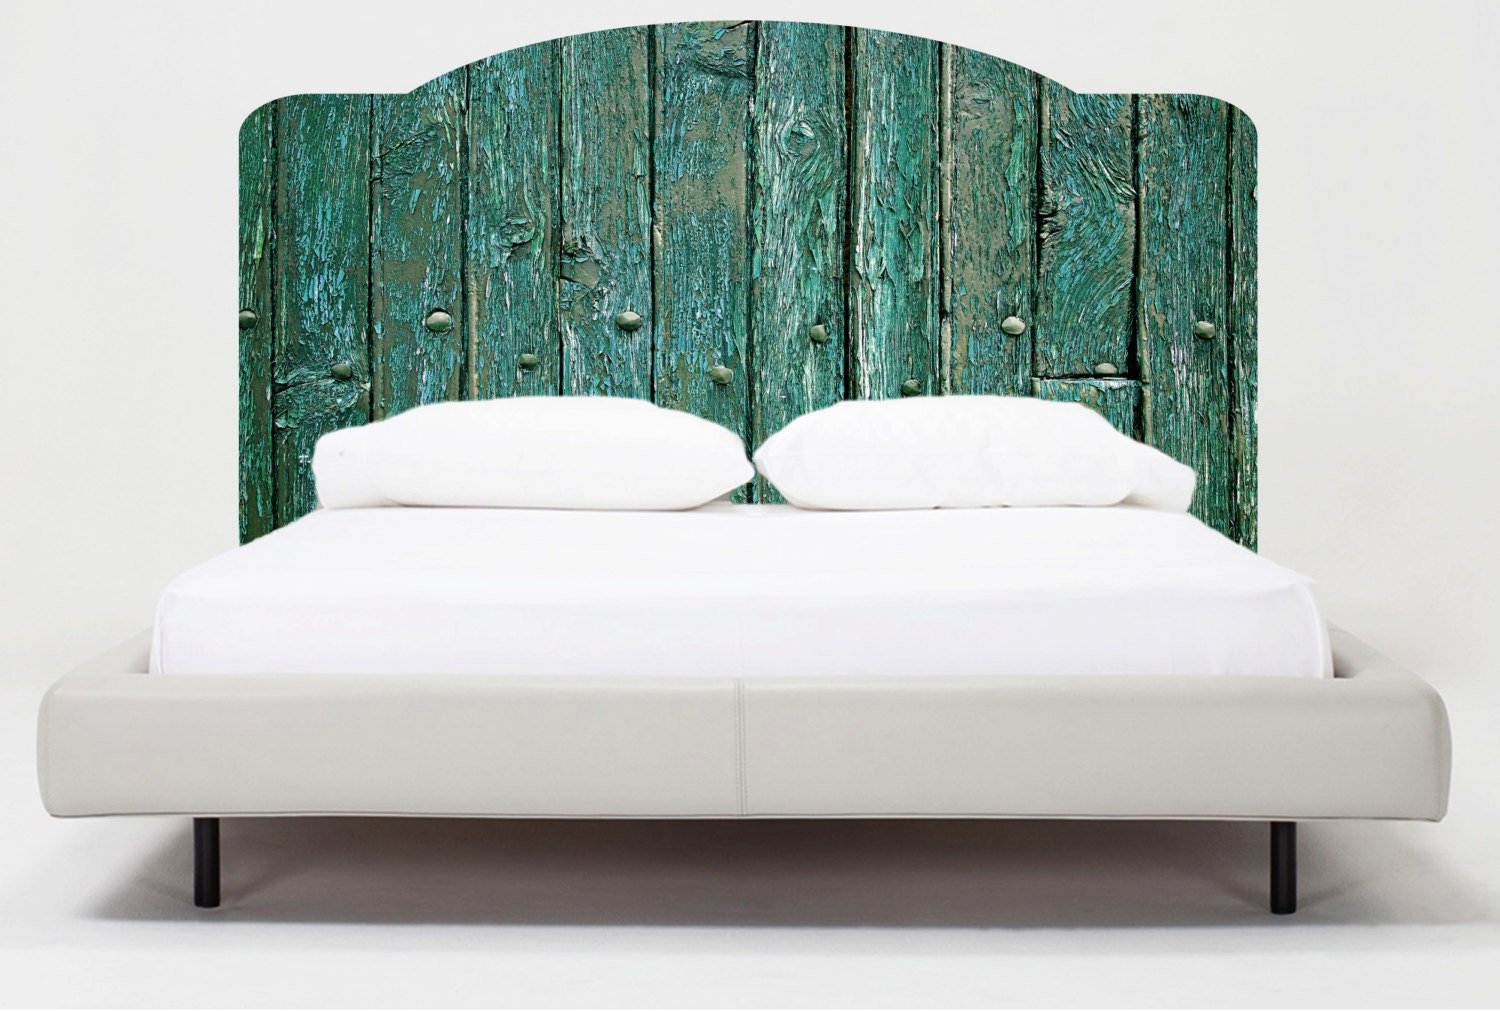 Bedroom headboard mural decals reusable headborads modern for Mural headboard